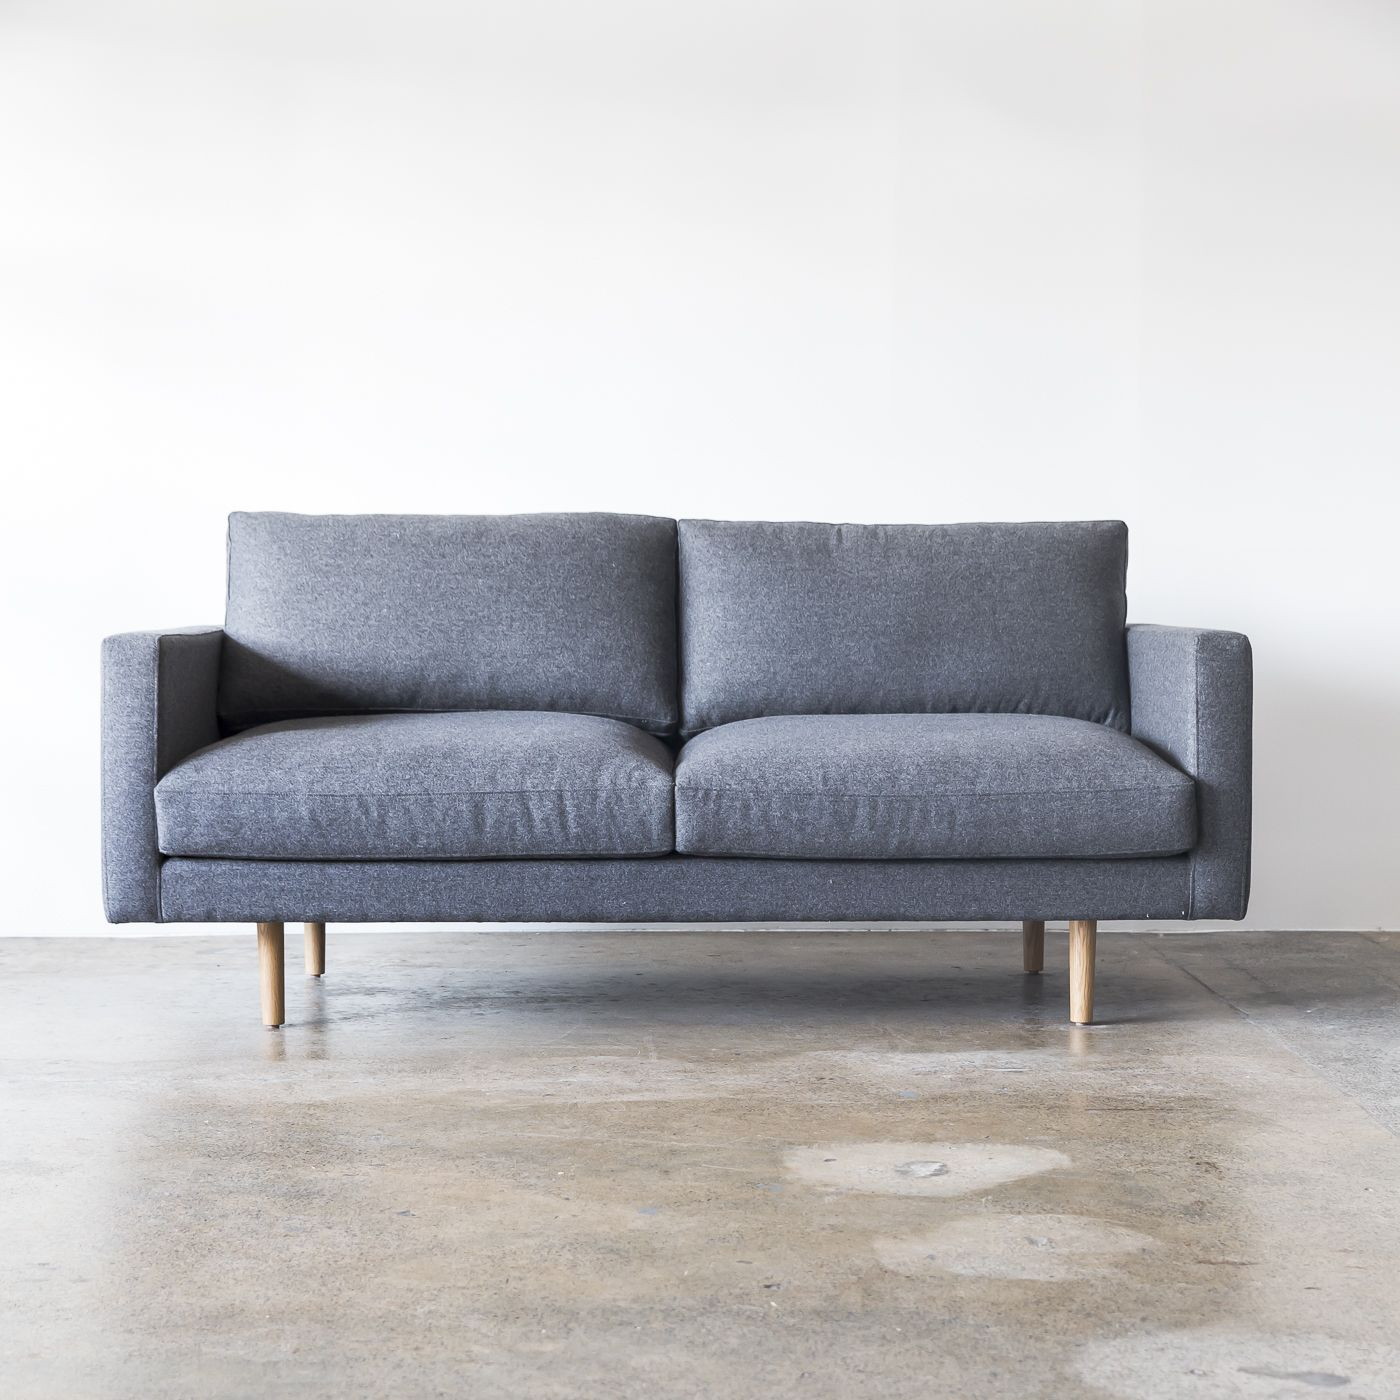 The Charlie Sofa From Our Staple Co Collection Made To Order In Sydney Feltsofa Scandi Livingroom Fabricl Fabric Sofa Tan Leather Sofas Sofa